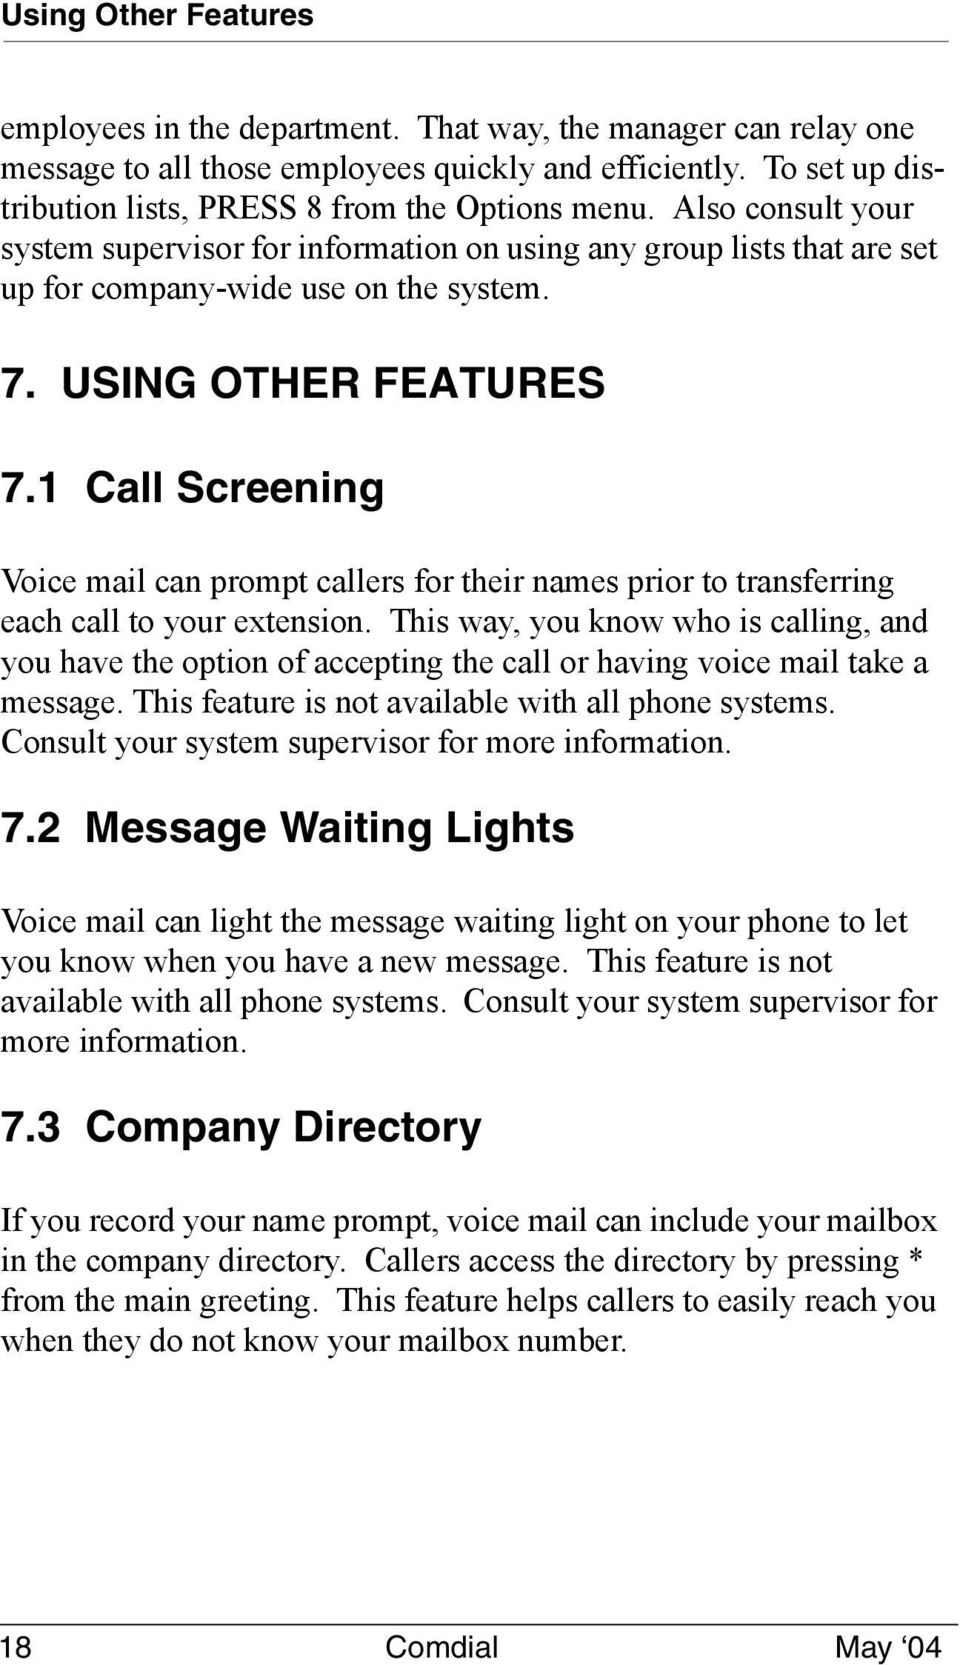 USING OTHER FEATURES 7.1 Call Screening Voice mail can prompt callers for their names prior to transferring each call to your extension.